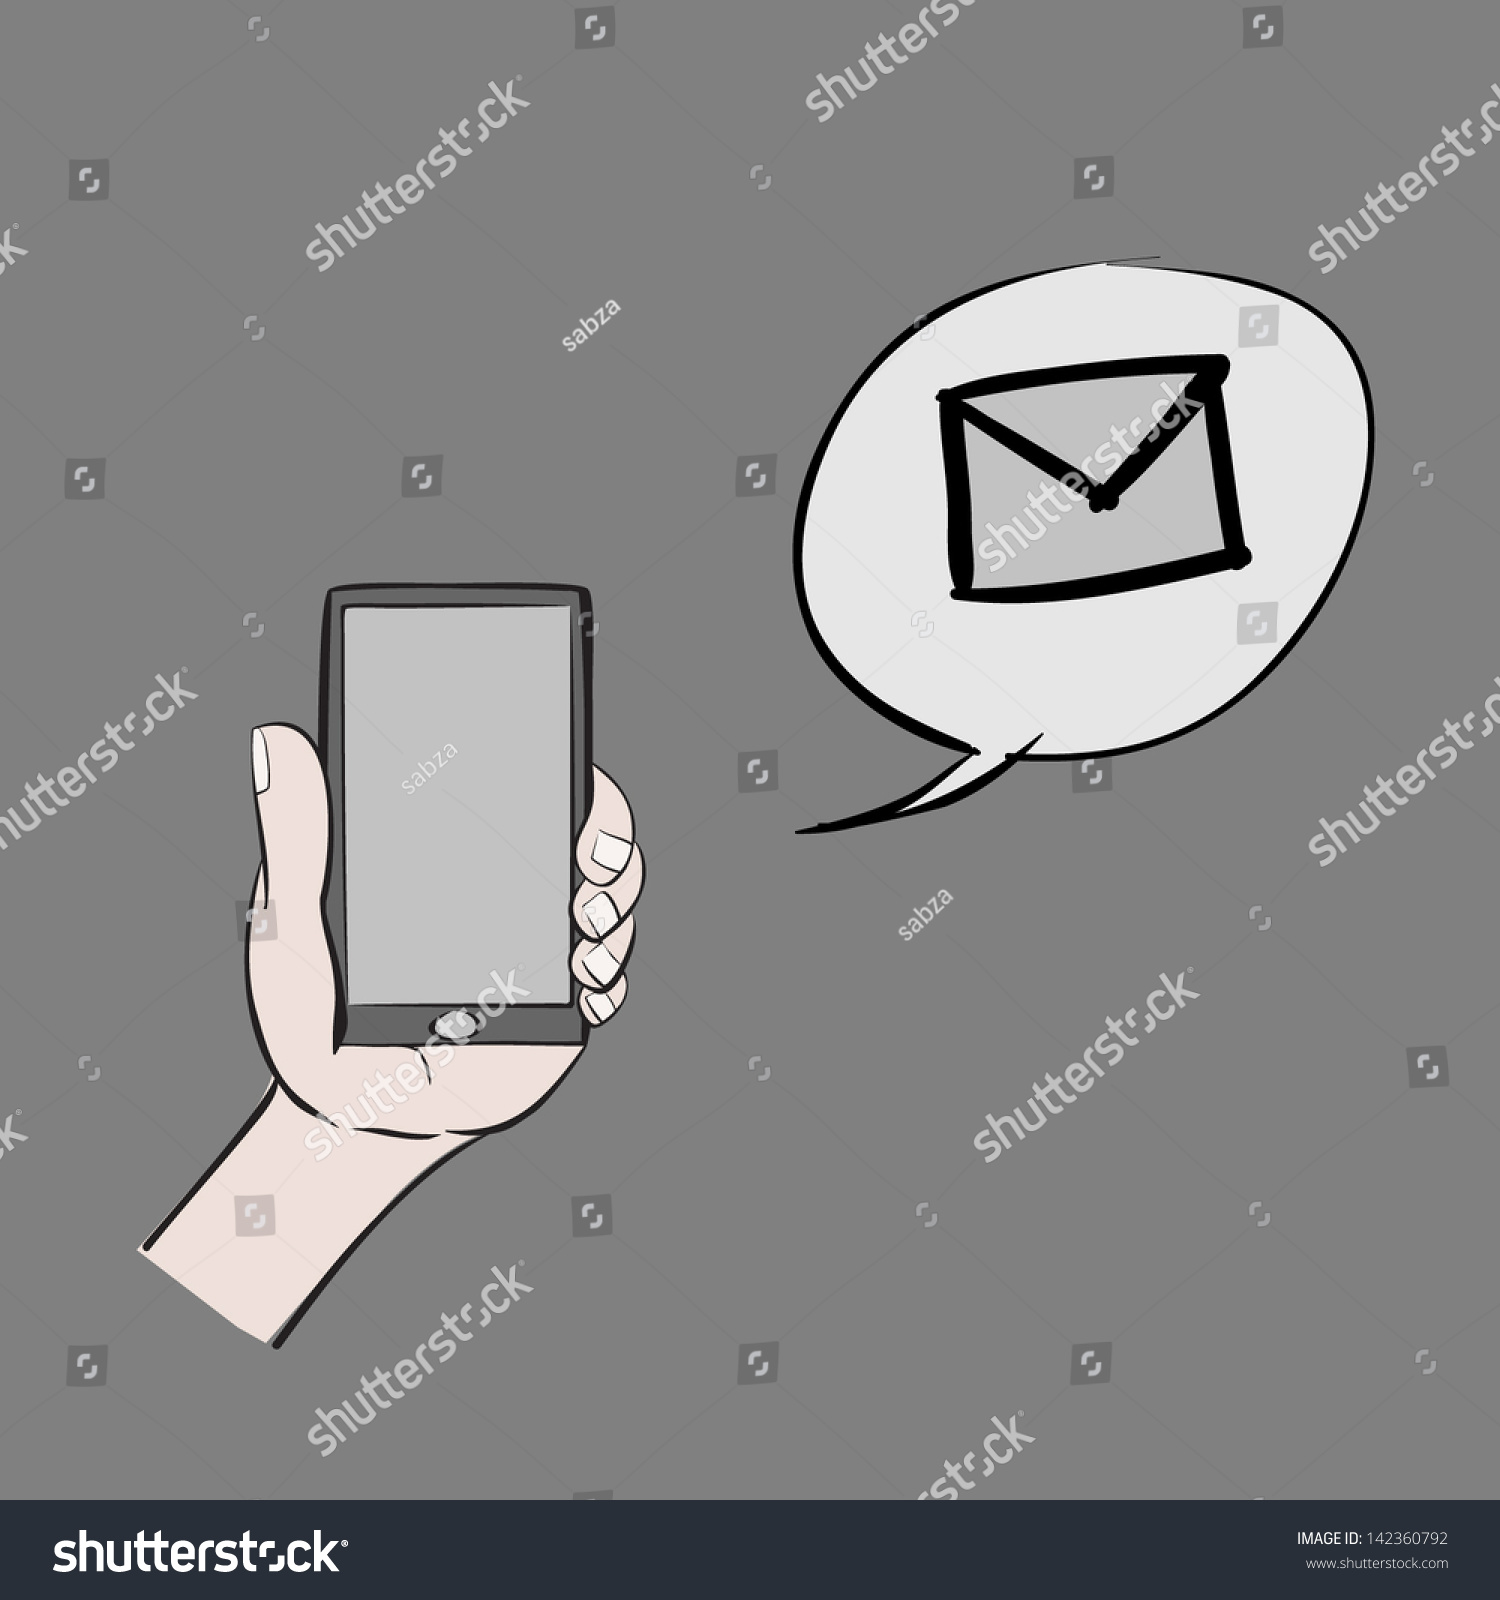 cartoon hand holding mobilephone and message alert